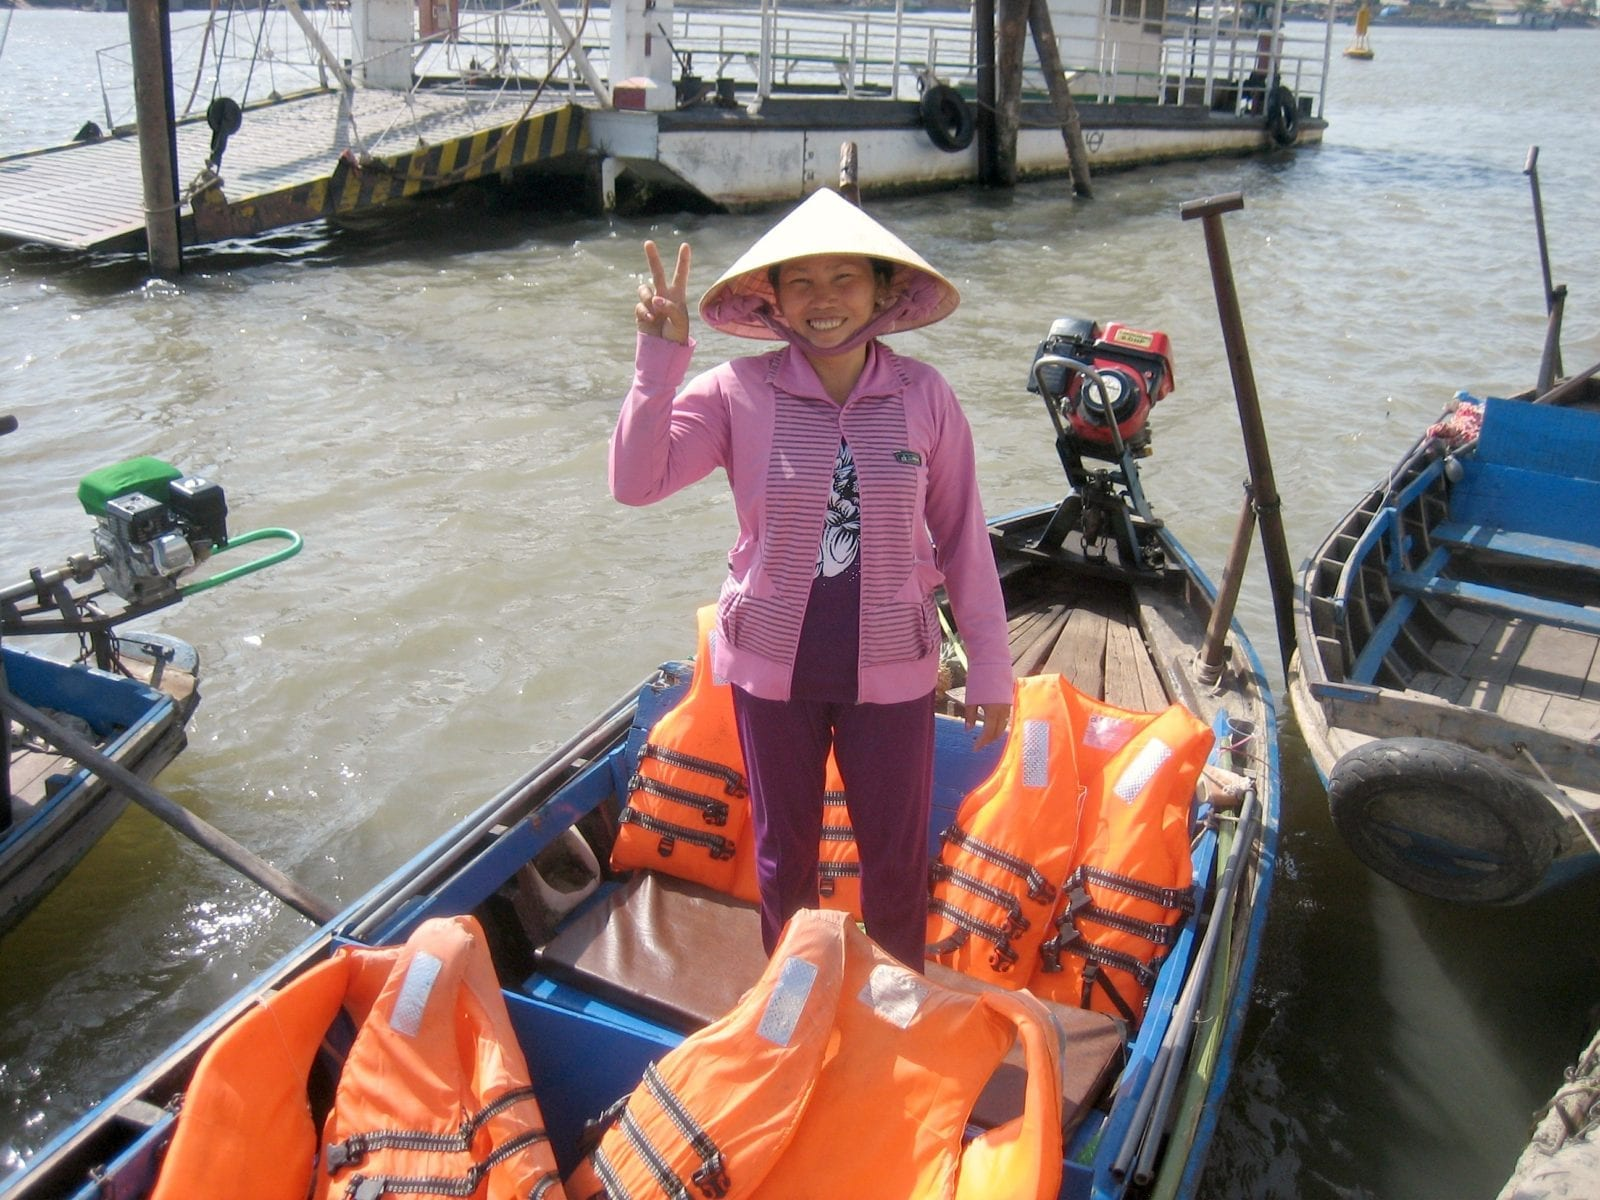 Cần Thơ floating market tour boat operator